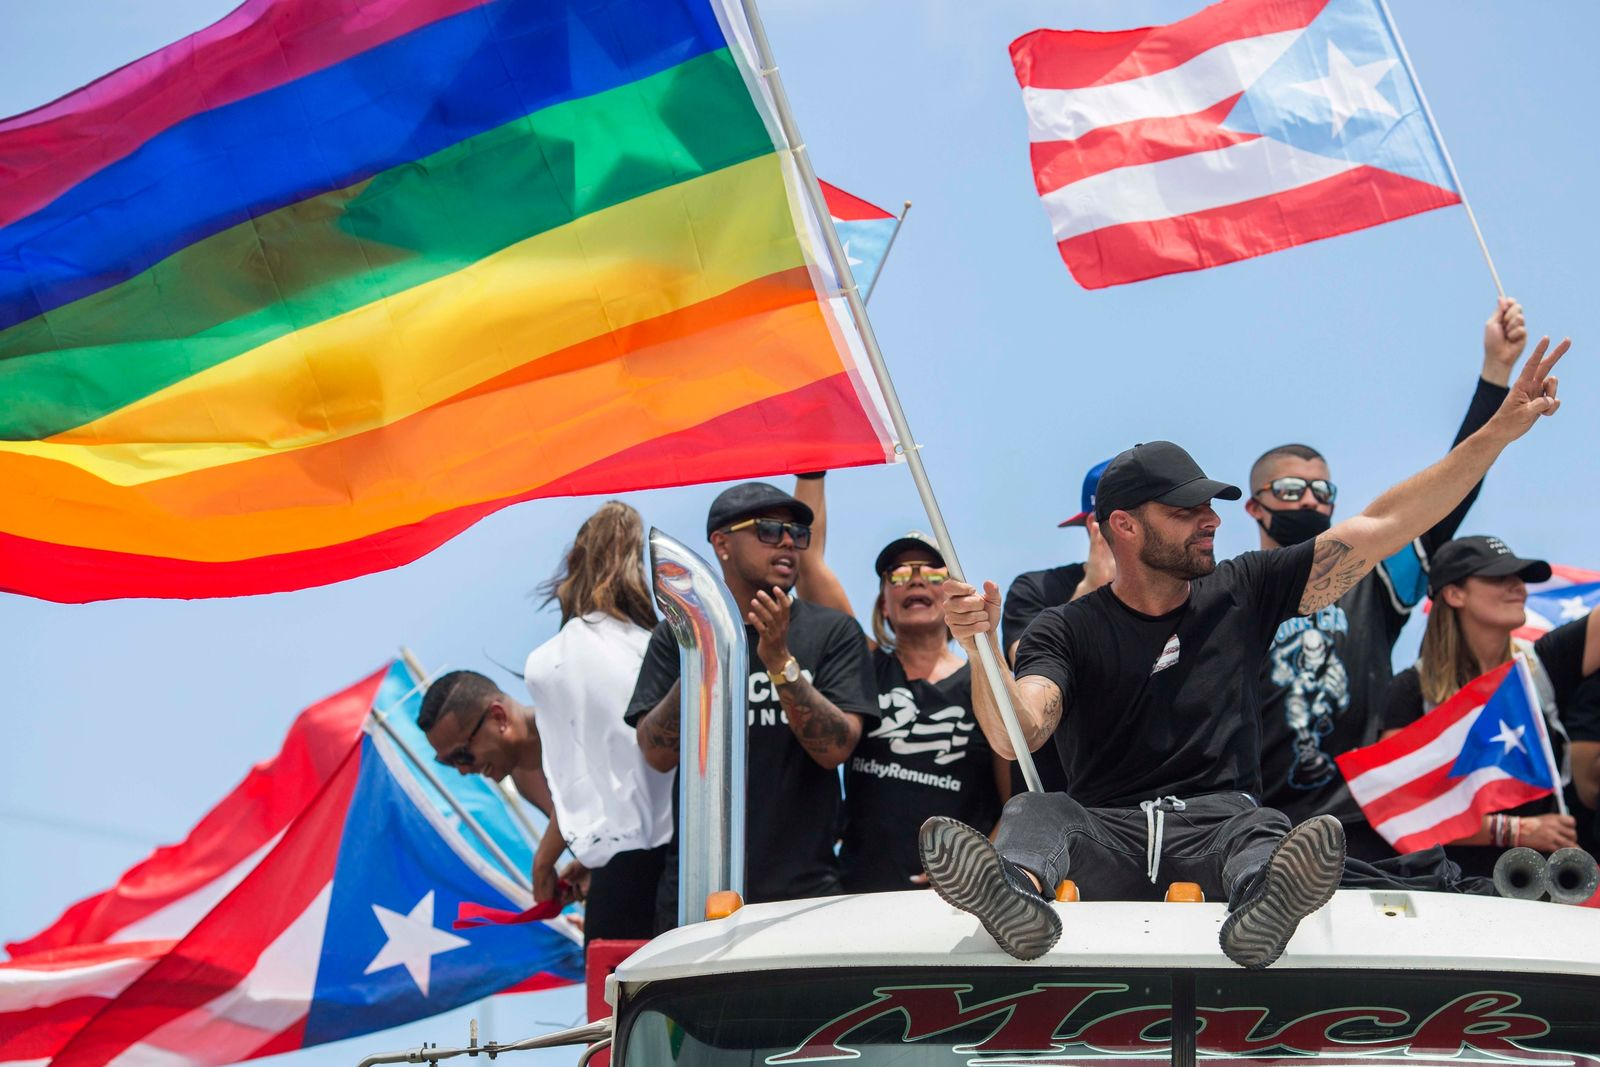 Ricky Martin, flying a gay pride flag, joins a protest to demand the resignation of Governor Ricardo Rossello from office, in San Juan, Puerto Rico, Monday, July 22, 2019. (AP Photo/Dennis M. Rivera Pichardo)